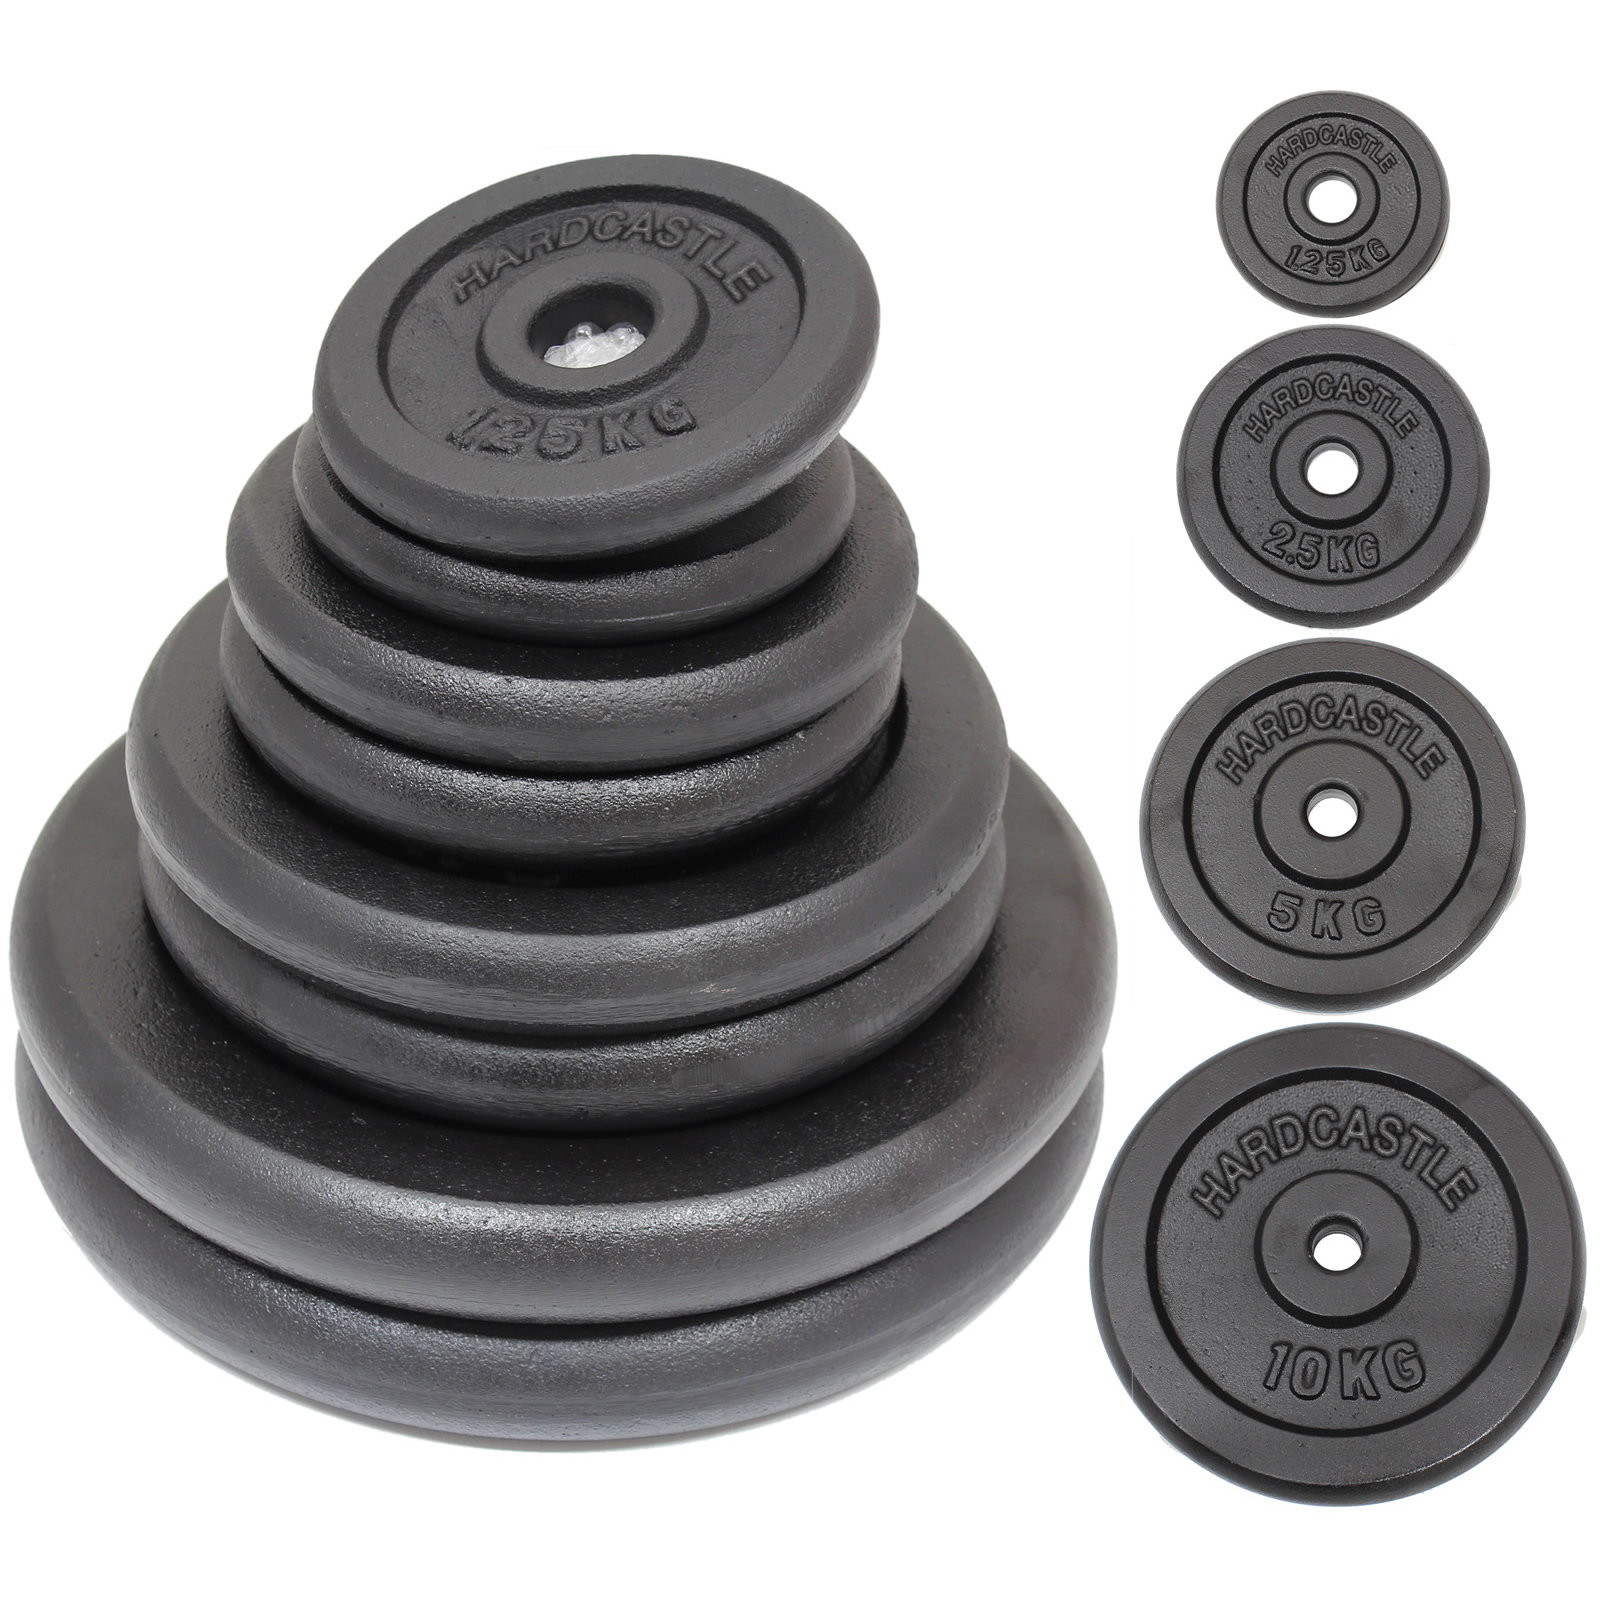 CAST-IRON-WEIGHTS-STANDARD-1-034-HOLE-HOME-GYM-WEIGHT-PLATES-DISCS-TRAINING-LIFTING thumbnail 13